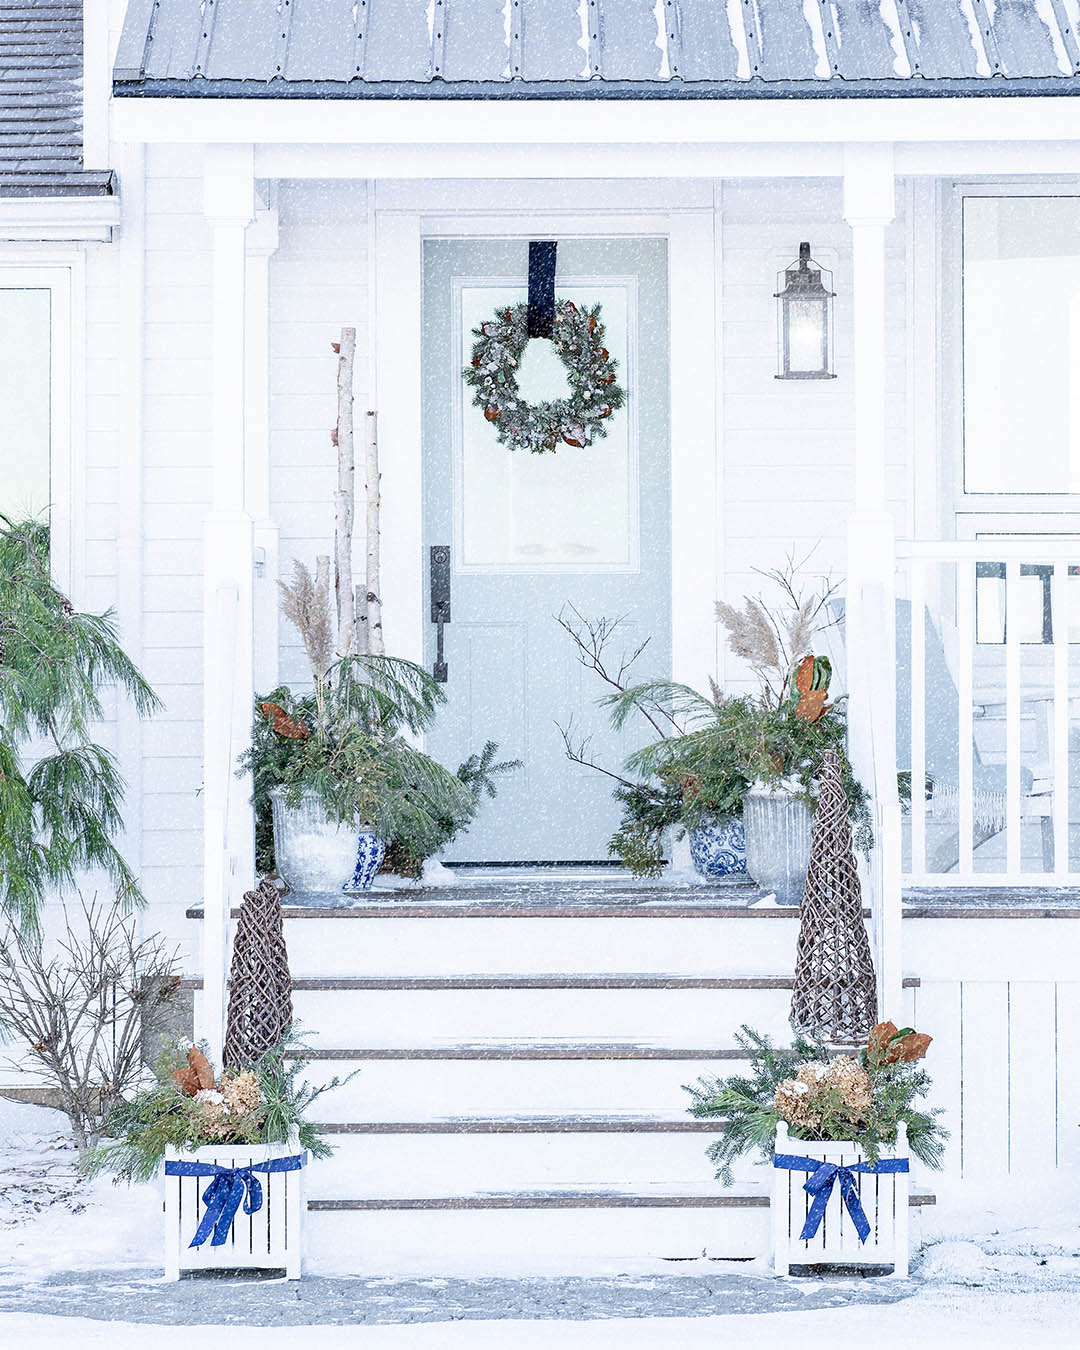 Today I'll be sharing how I've decorated our front porch for Christmas this year! Here's our Christmas front porch 2020!